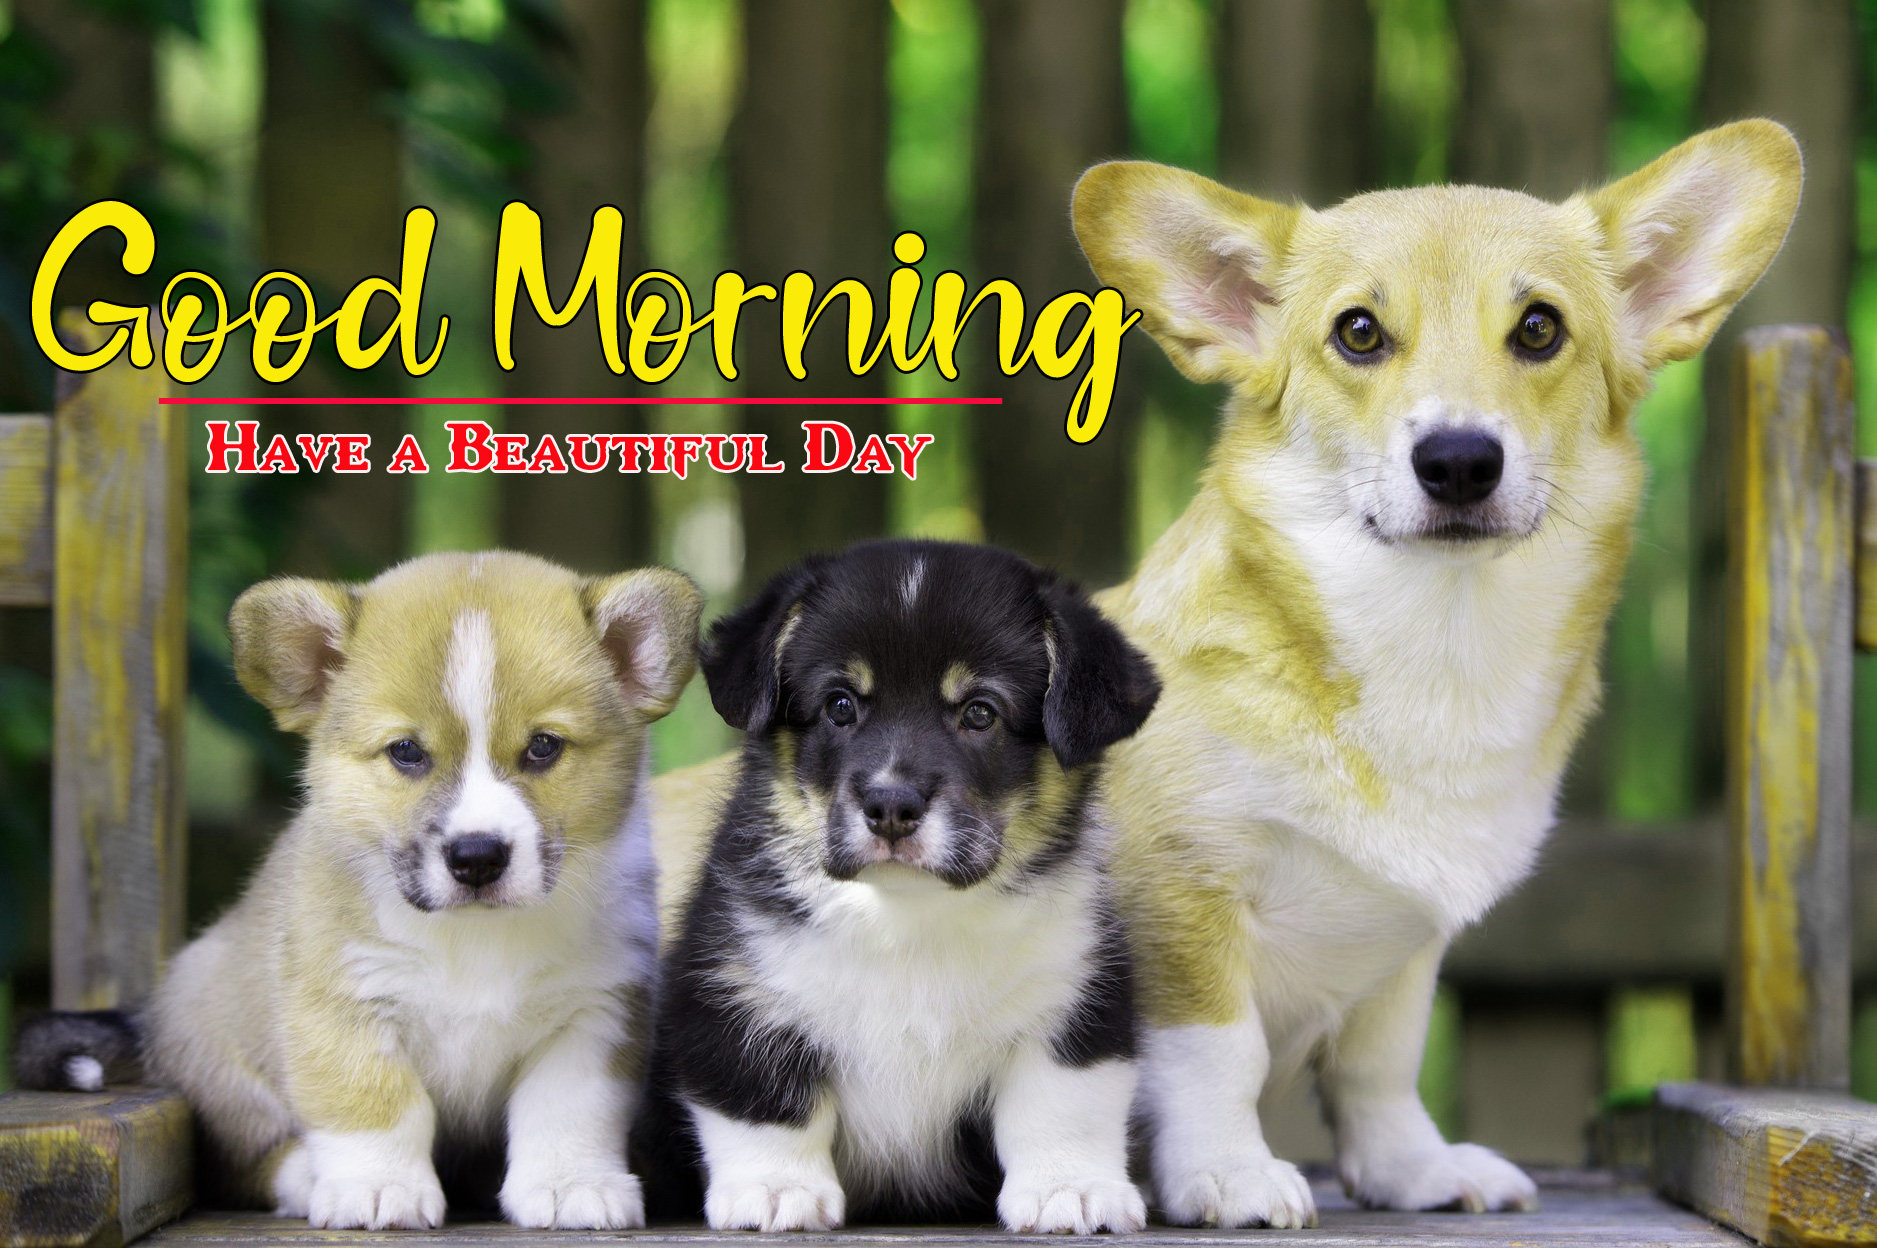 Cute Dog Puppy Good Morning Images 3